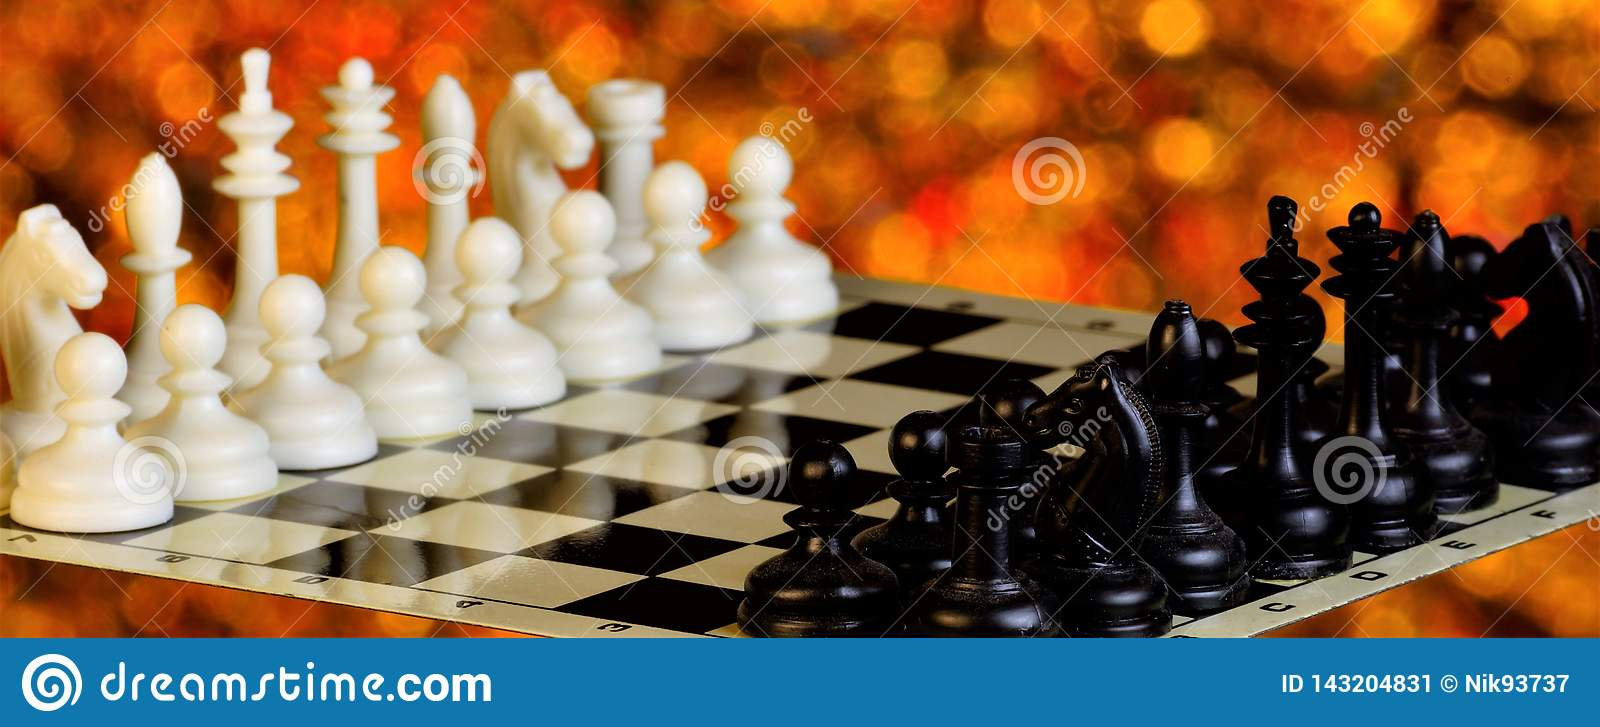 Chess on the chessboard, competition and winning strategy. Chess is a popular ancient Board logic antagonistic game with special